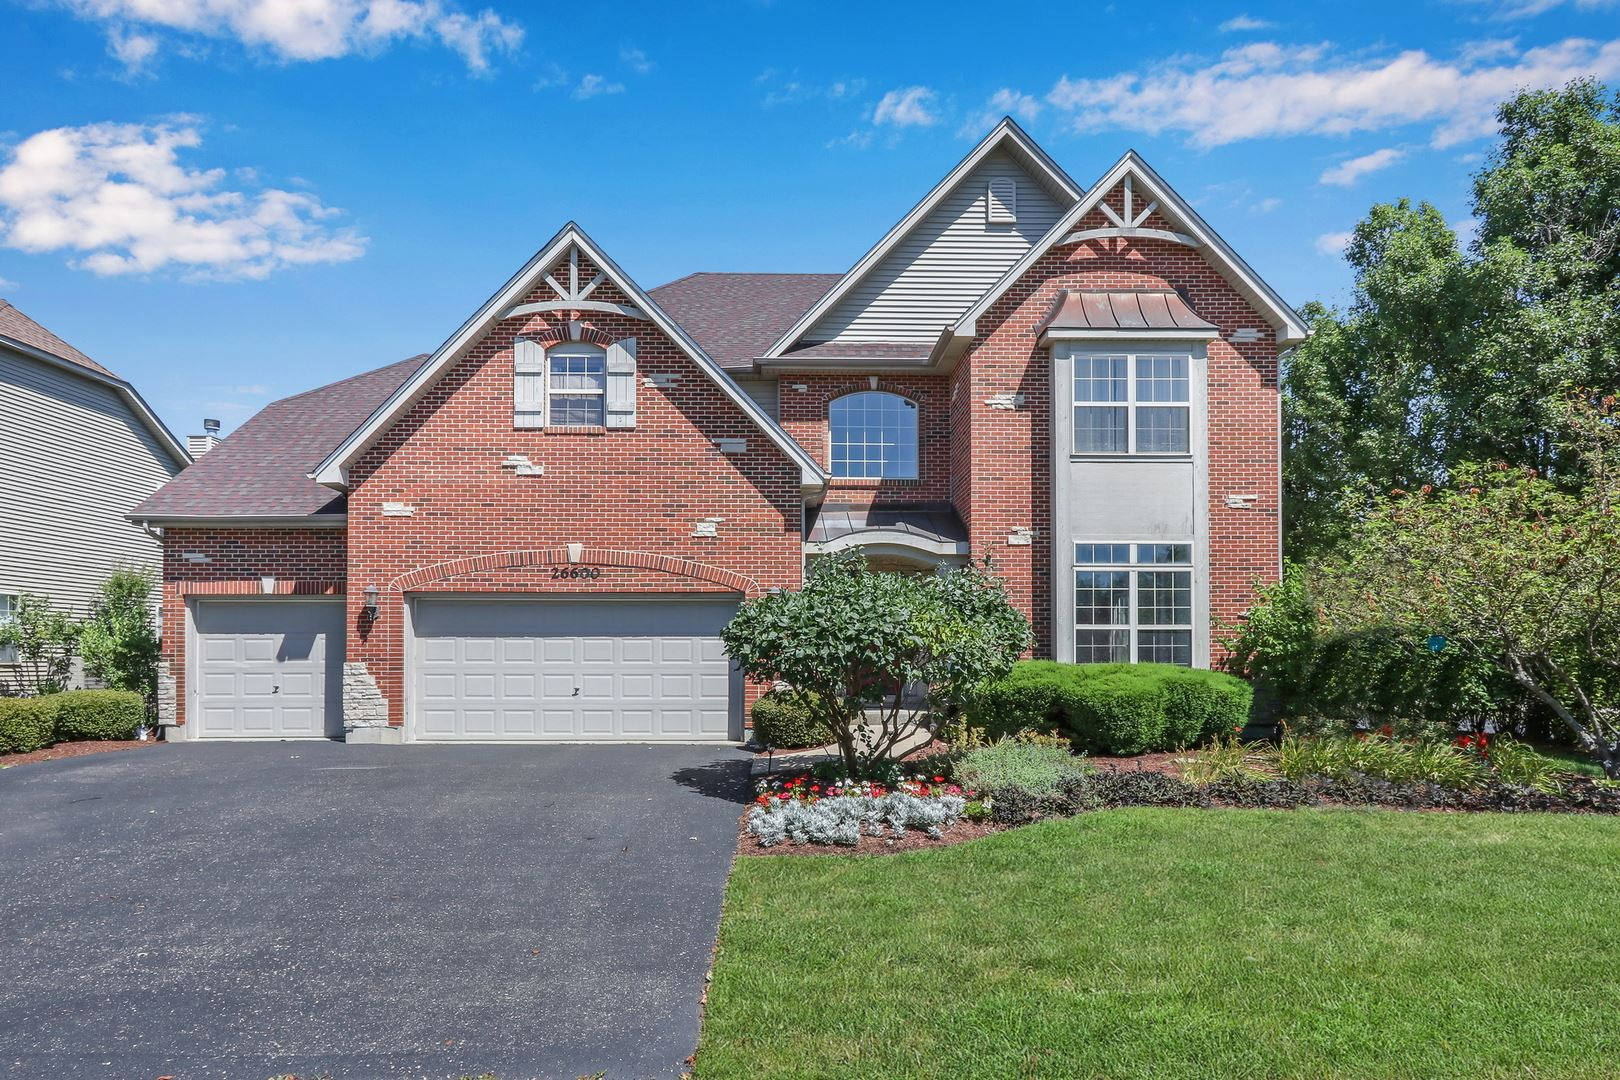 Photo of 26600 Lindengate Circle, Plainfield, IL 60585 (MLS # 10854617)